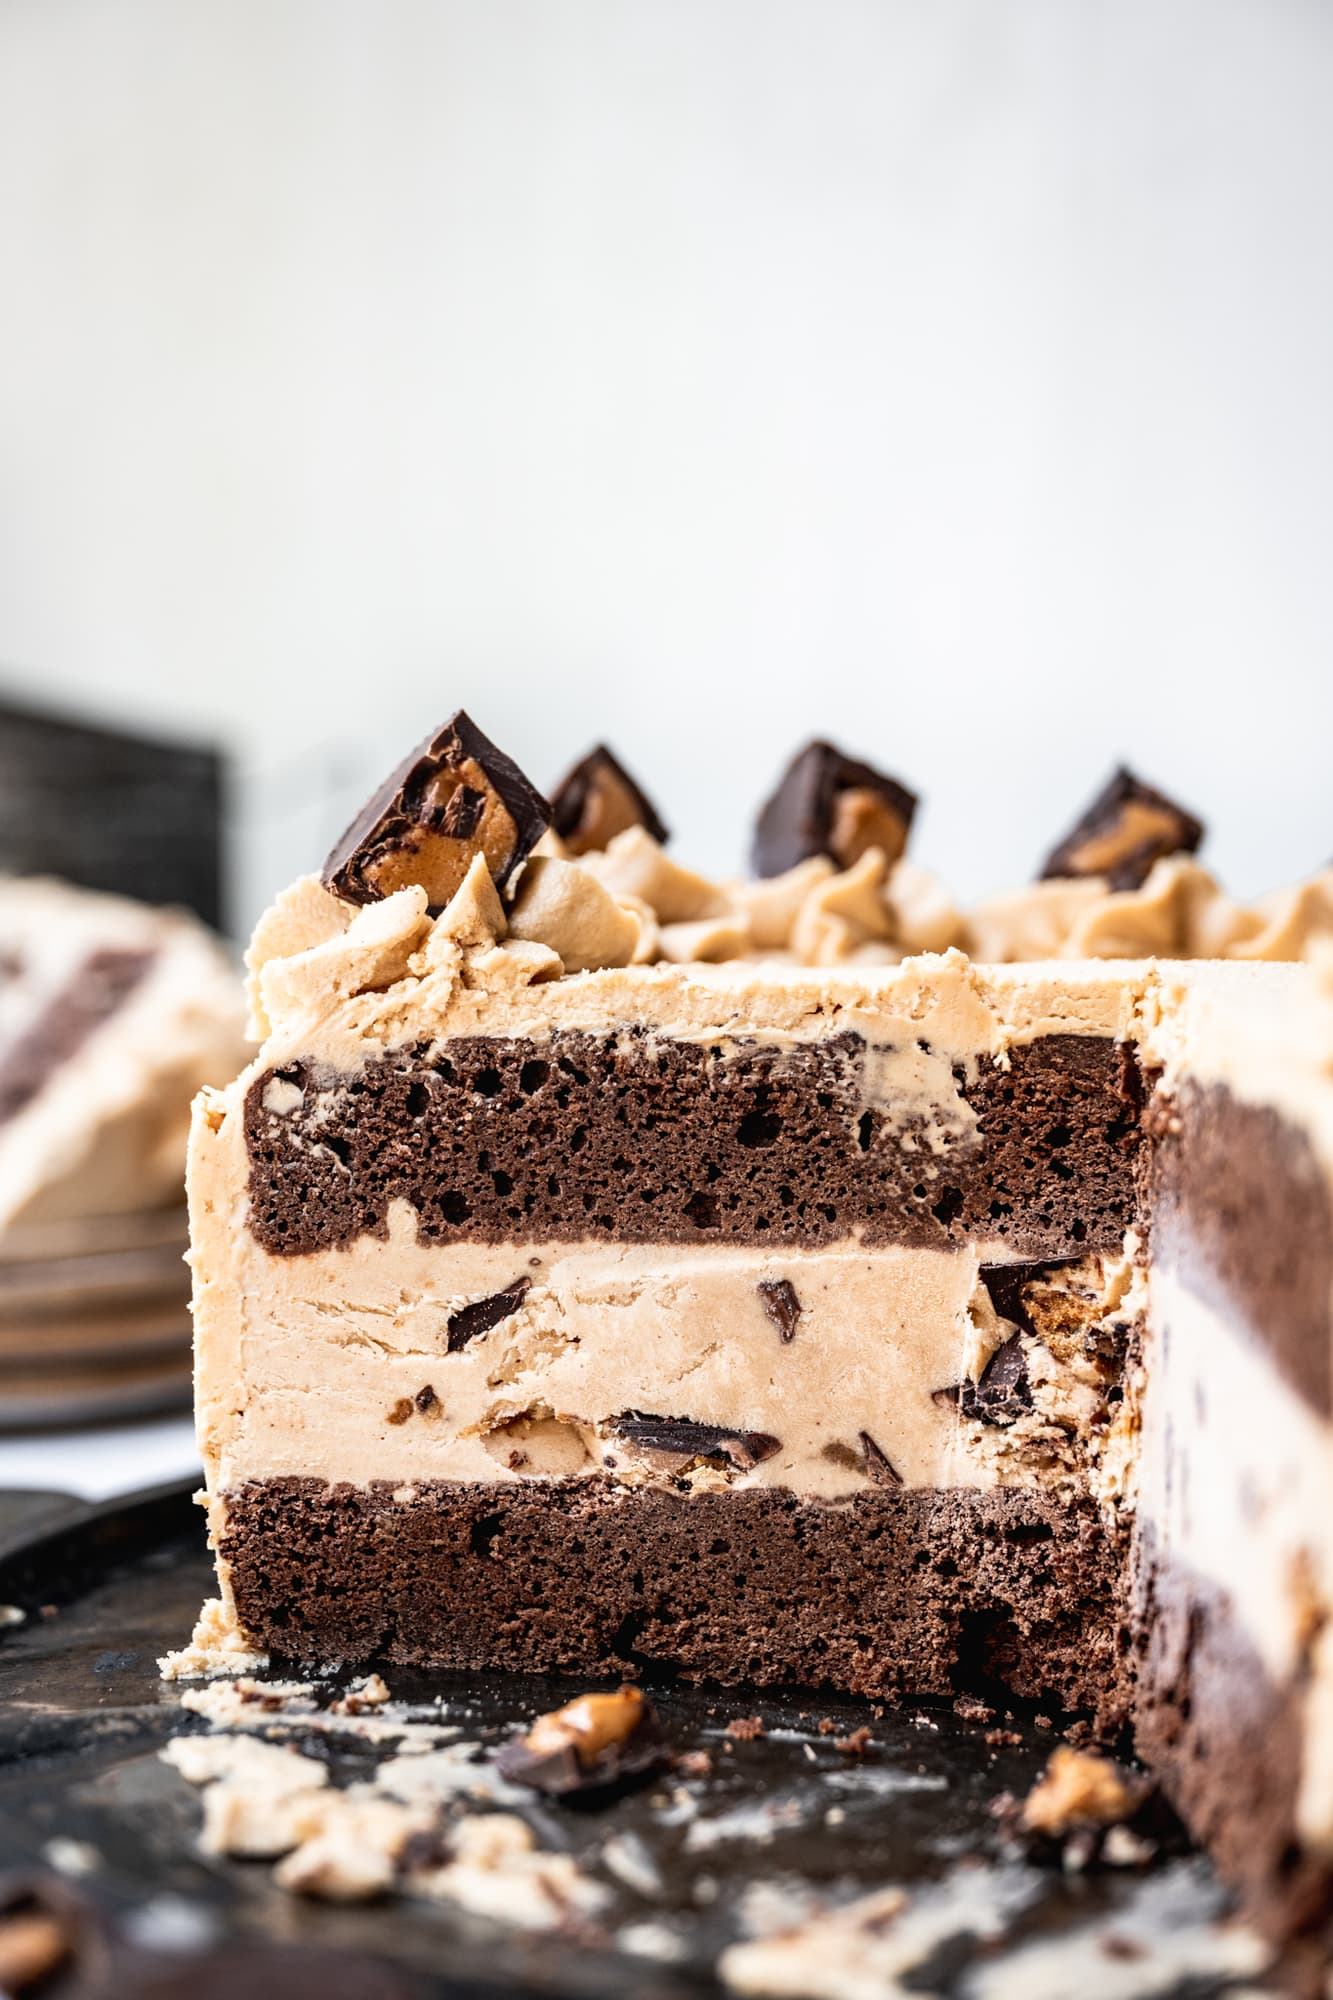 side view of cross section of chocolate peanut butter ice cream cake